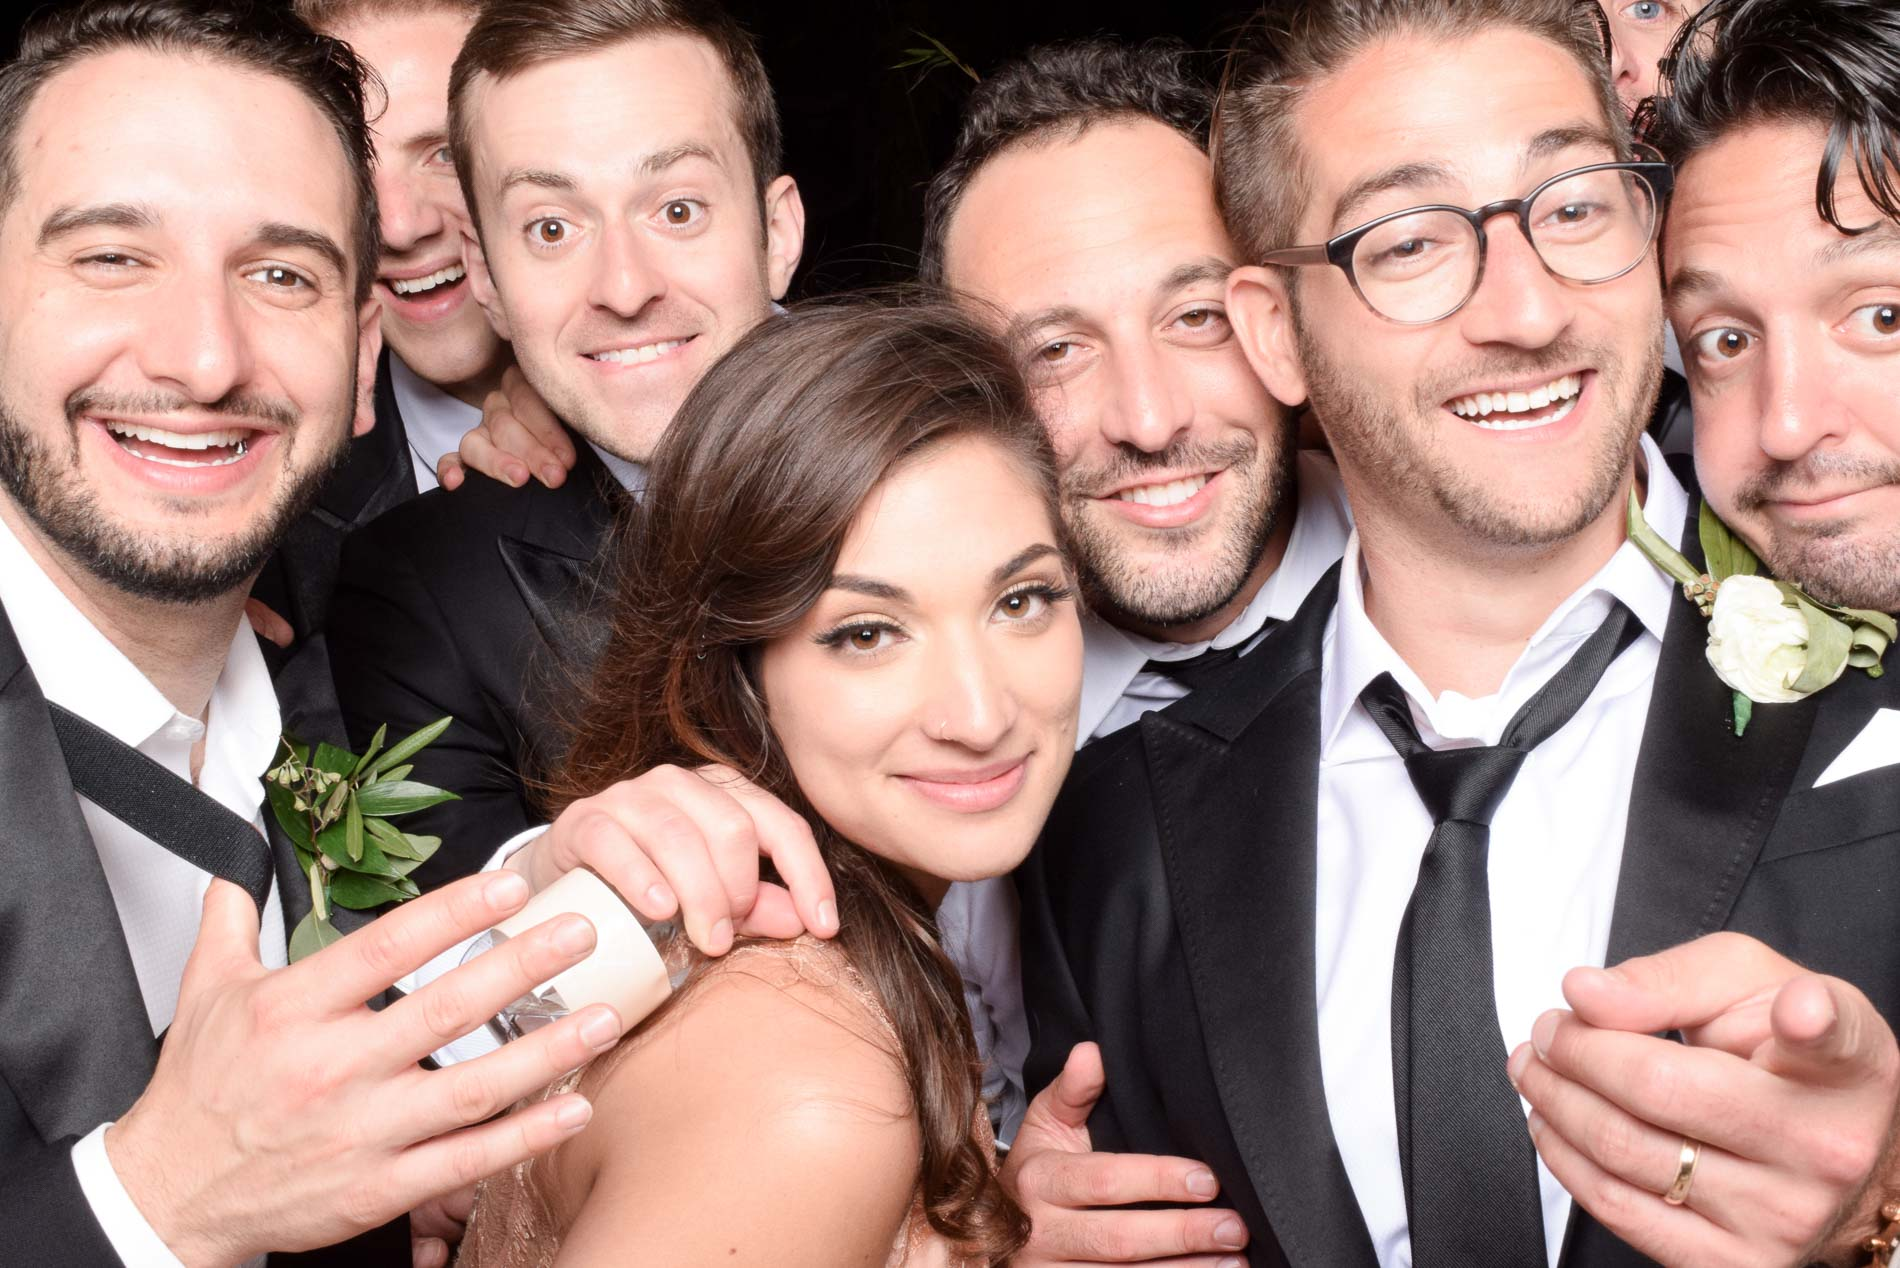 6 guys and a woman take pictures with the groom